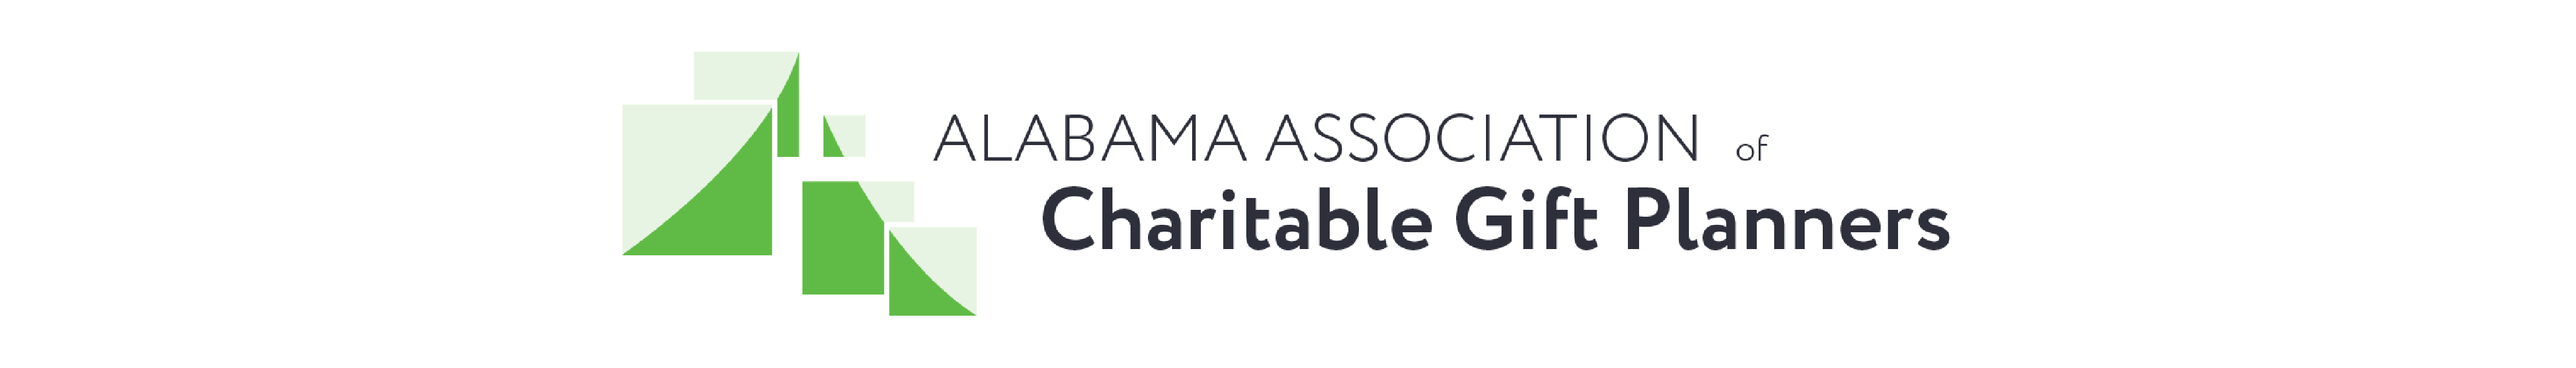 Alabama Association of Charitable Gift Planners Logo